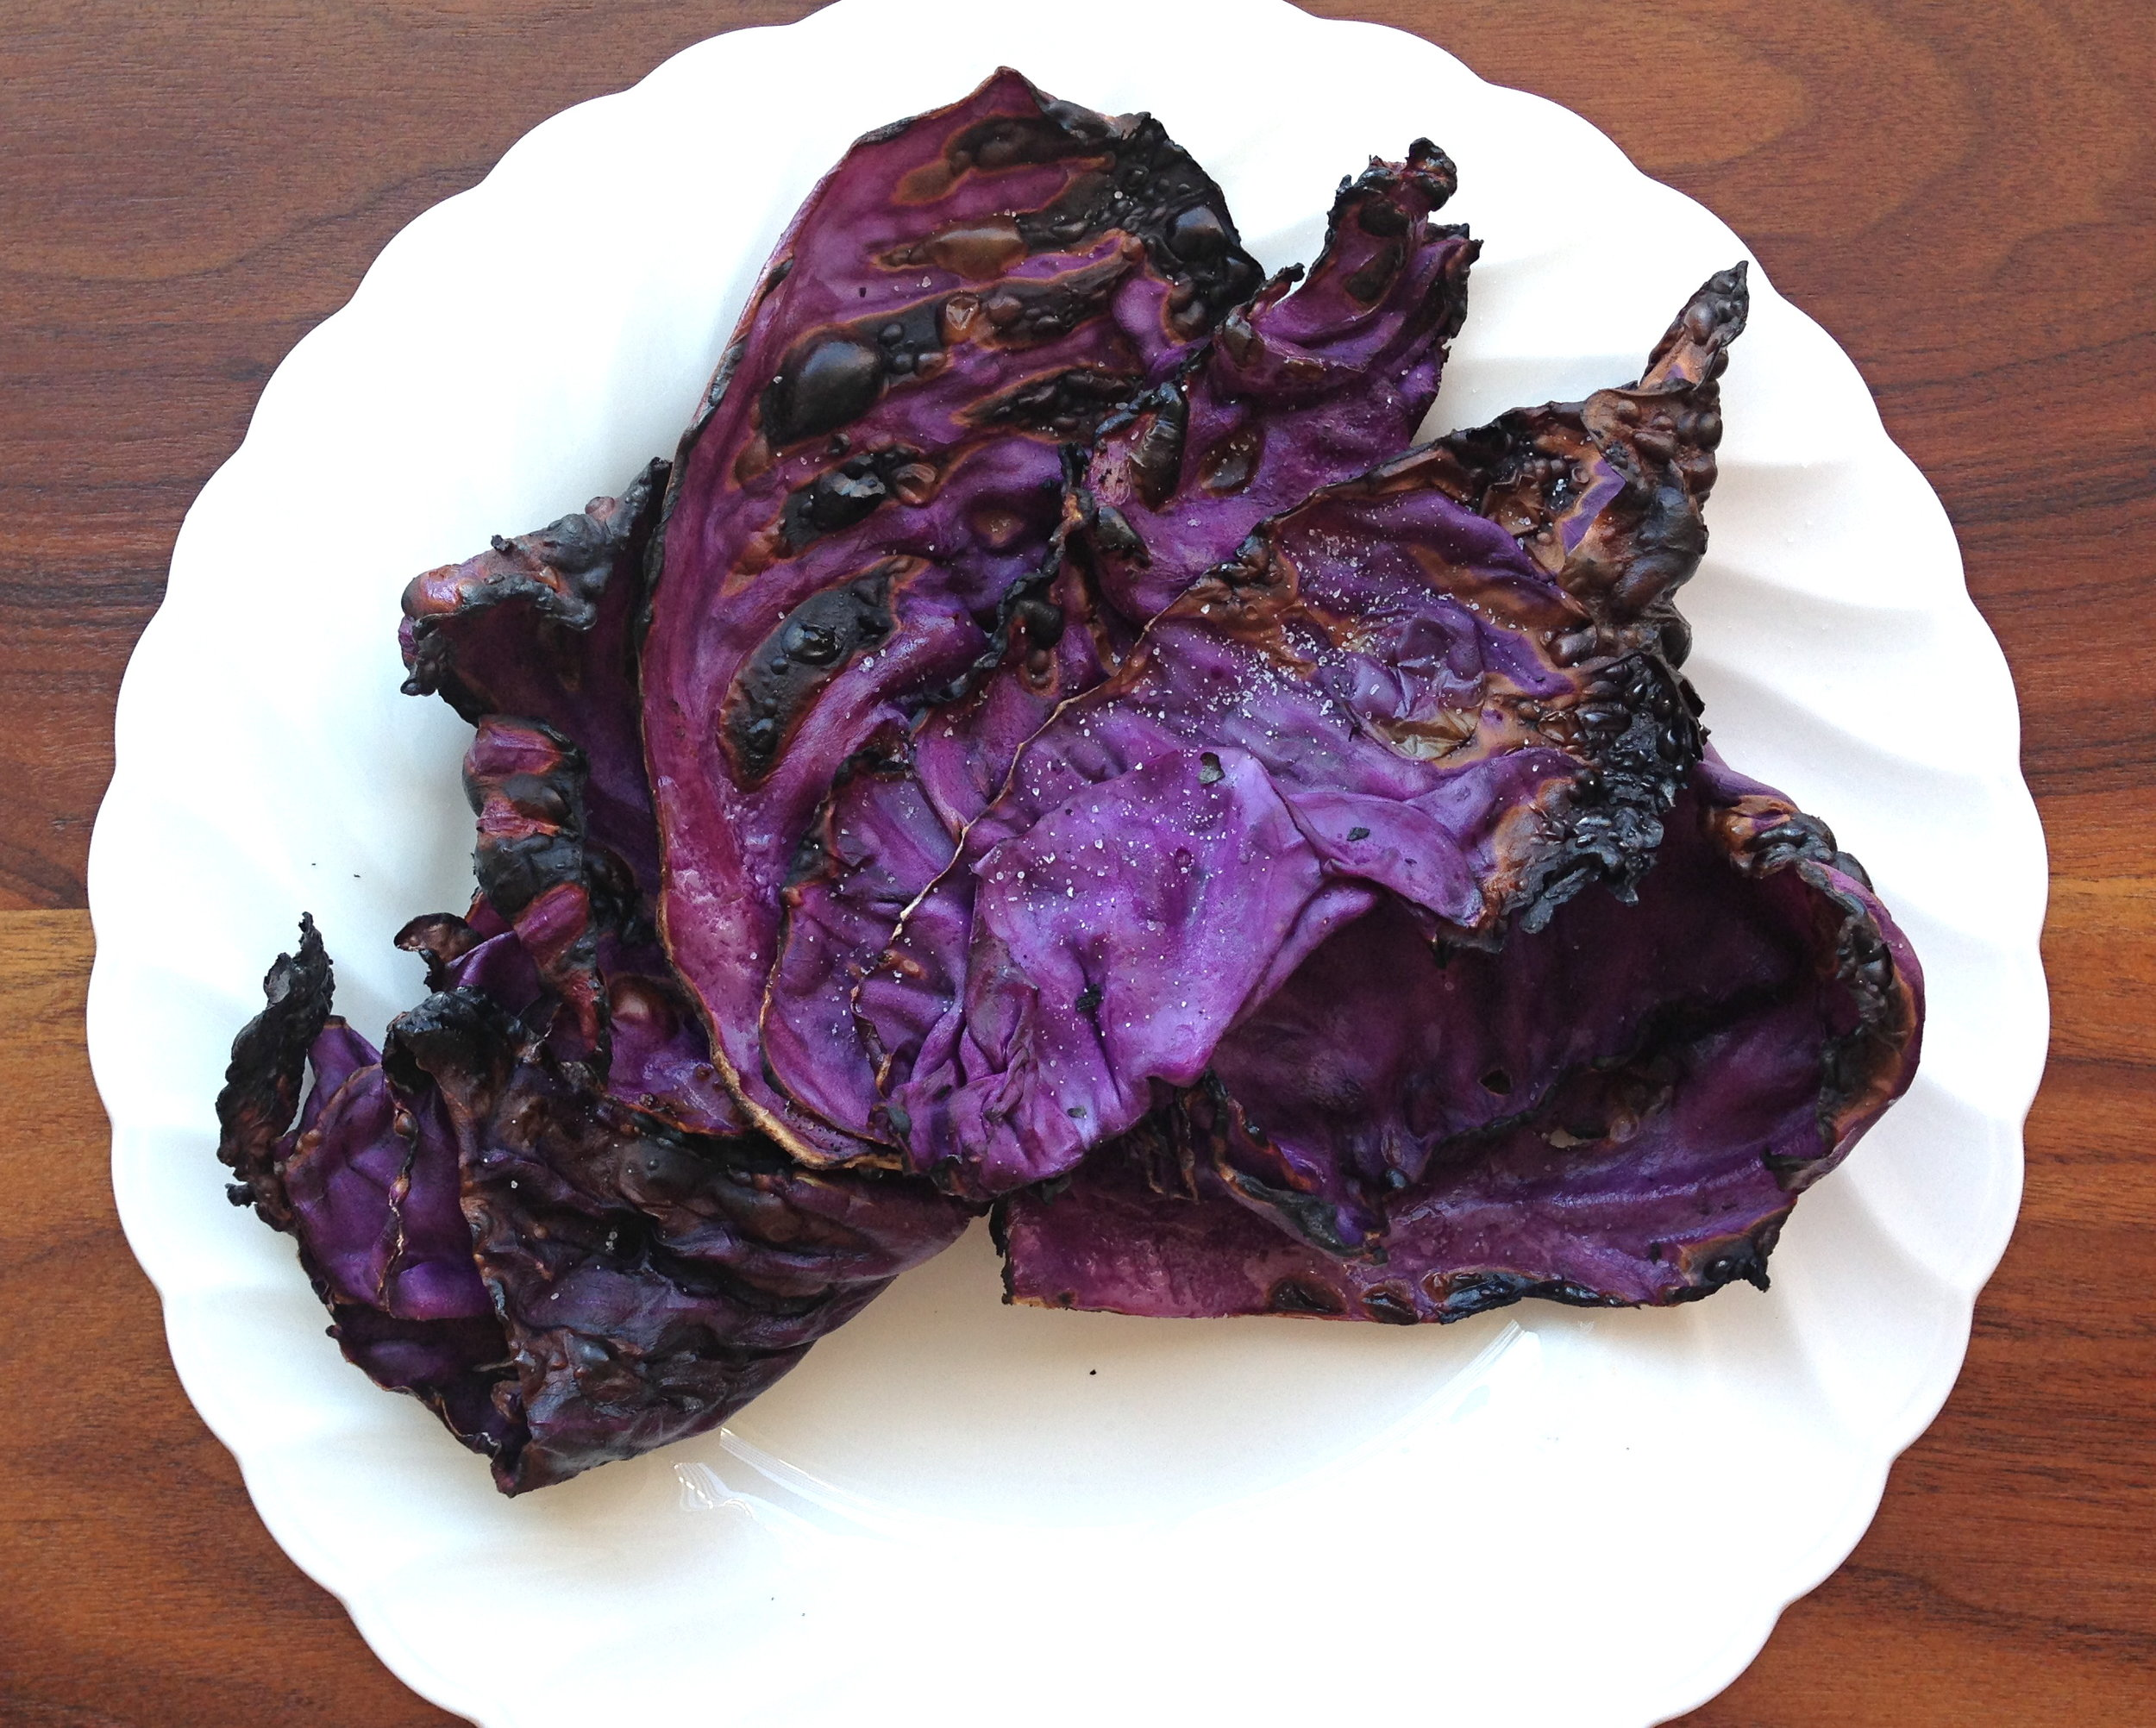 Crispy, grilled, yummy cabbage.